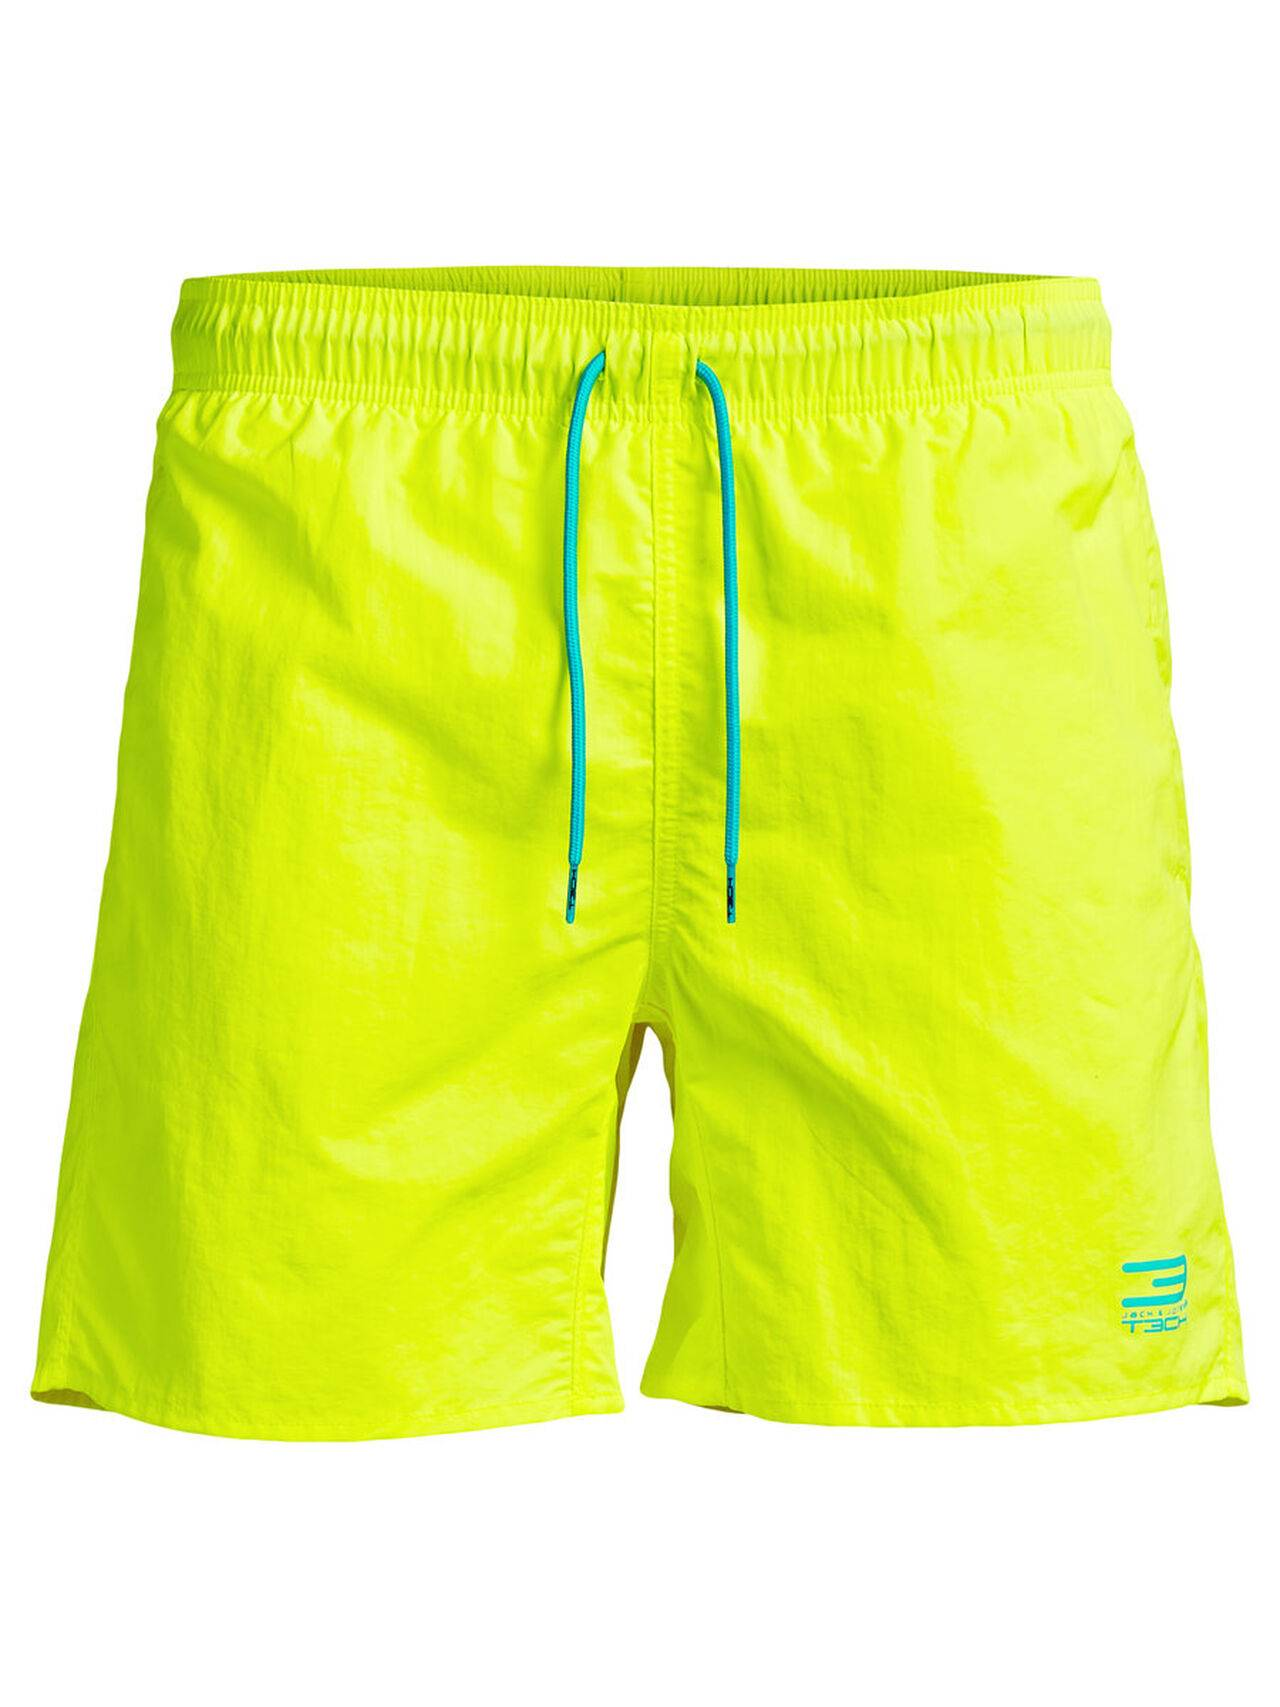 Jack & Jones Classic Swimshorts SafetyYellow